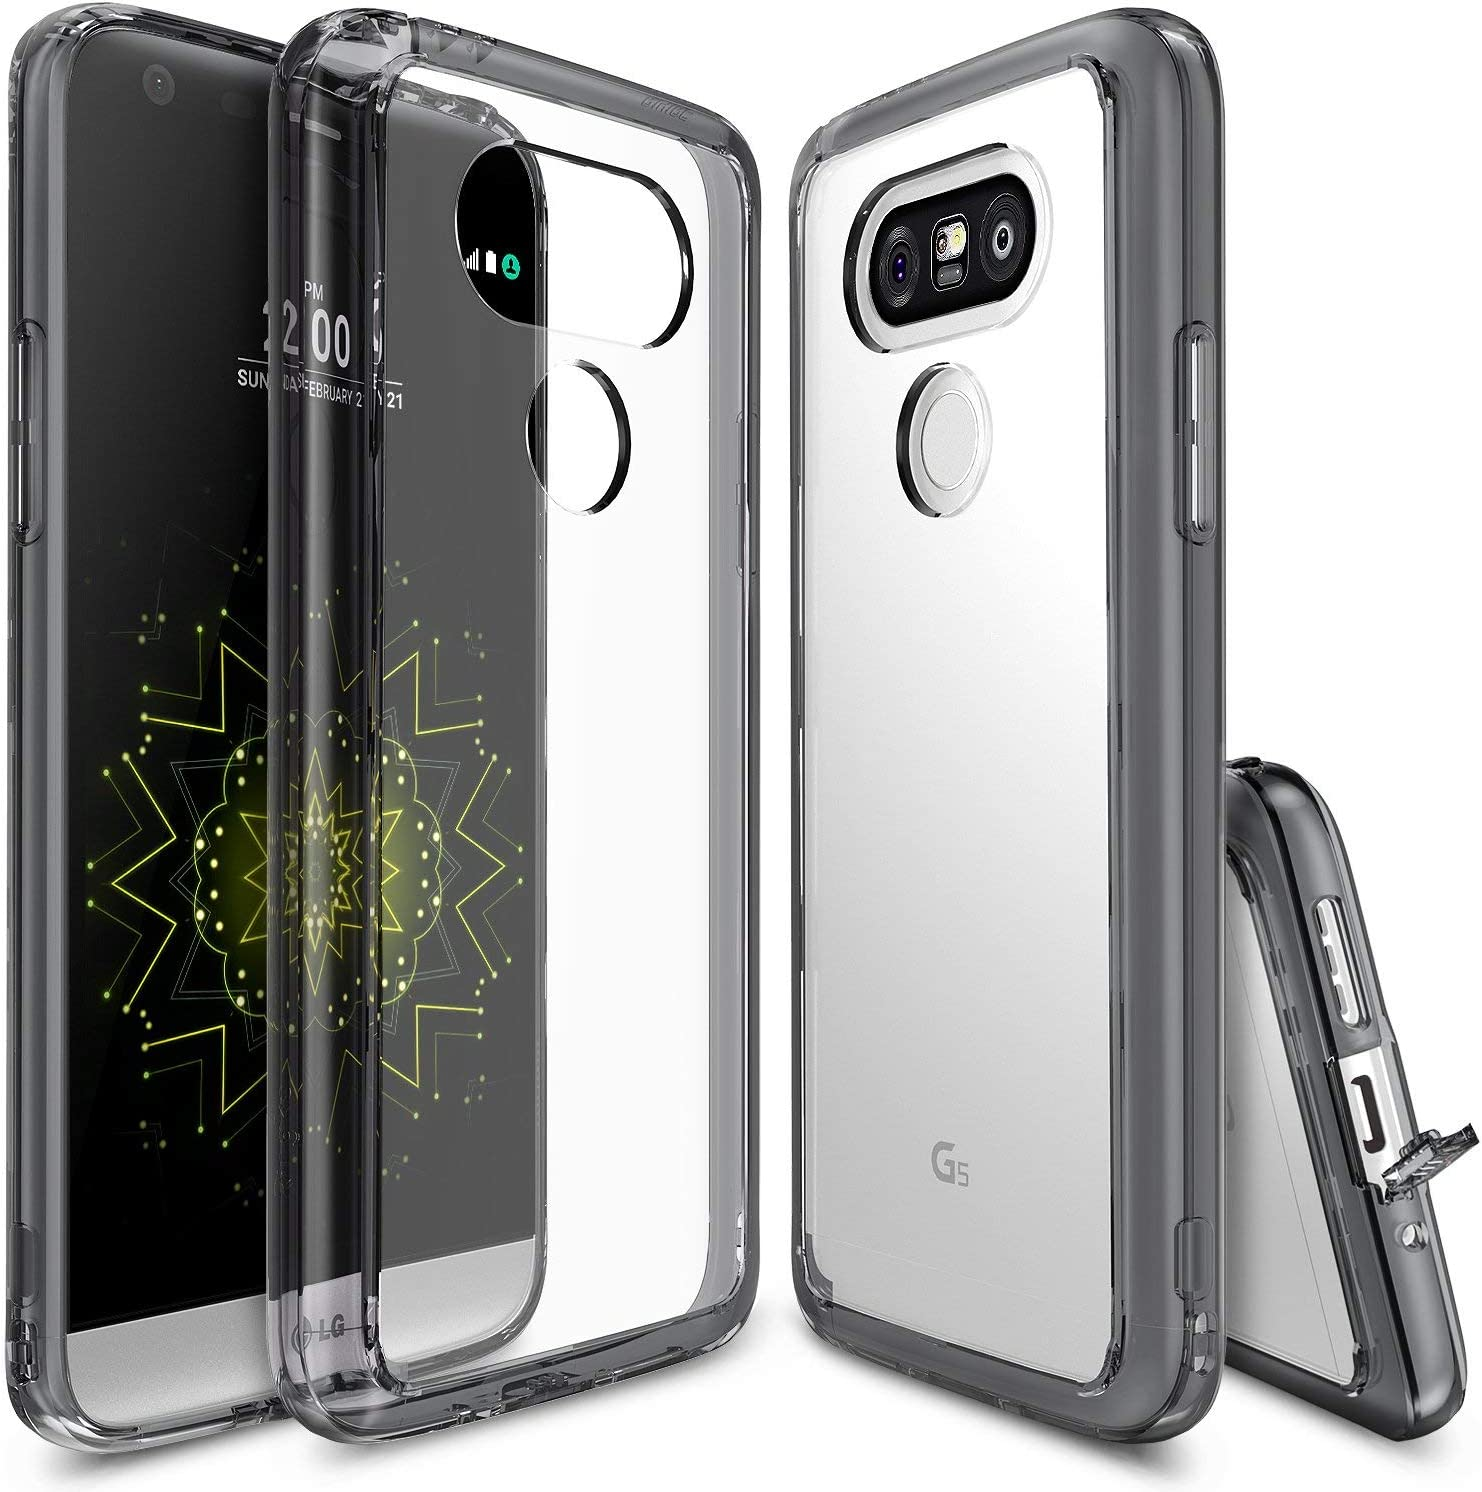 Ringke Fusion Compatible with LG G5 Case Crystal Clear PC Back TPU Bumper Drop Protection, Shock Absorption Technology Attached Dust Cap Raised Bezels Protective Cover for LG G5 2016 - Smoke Black